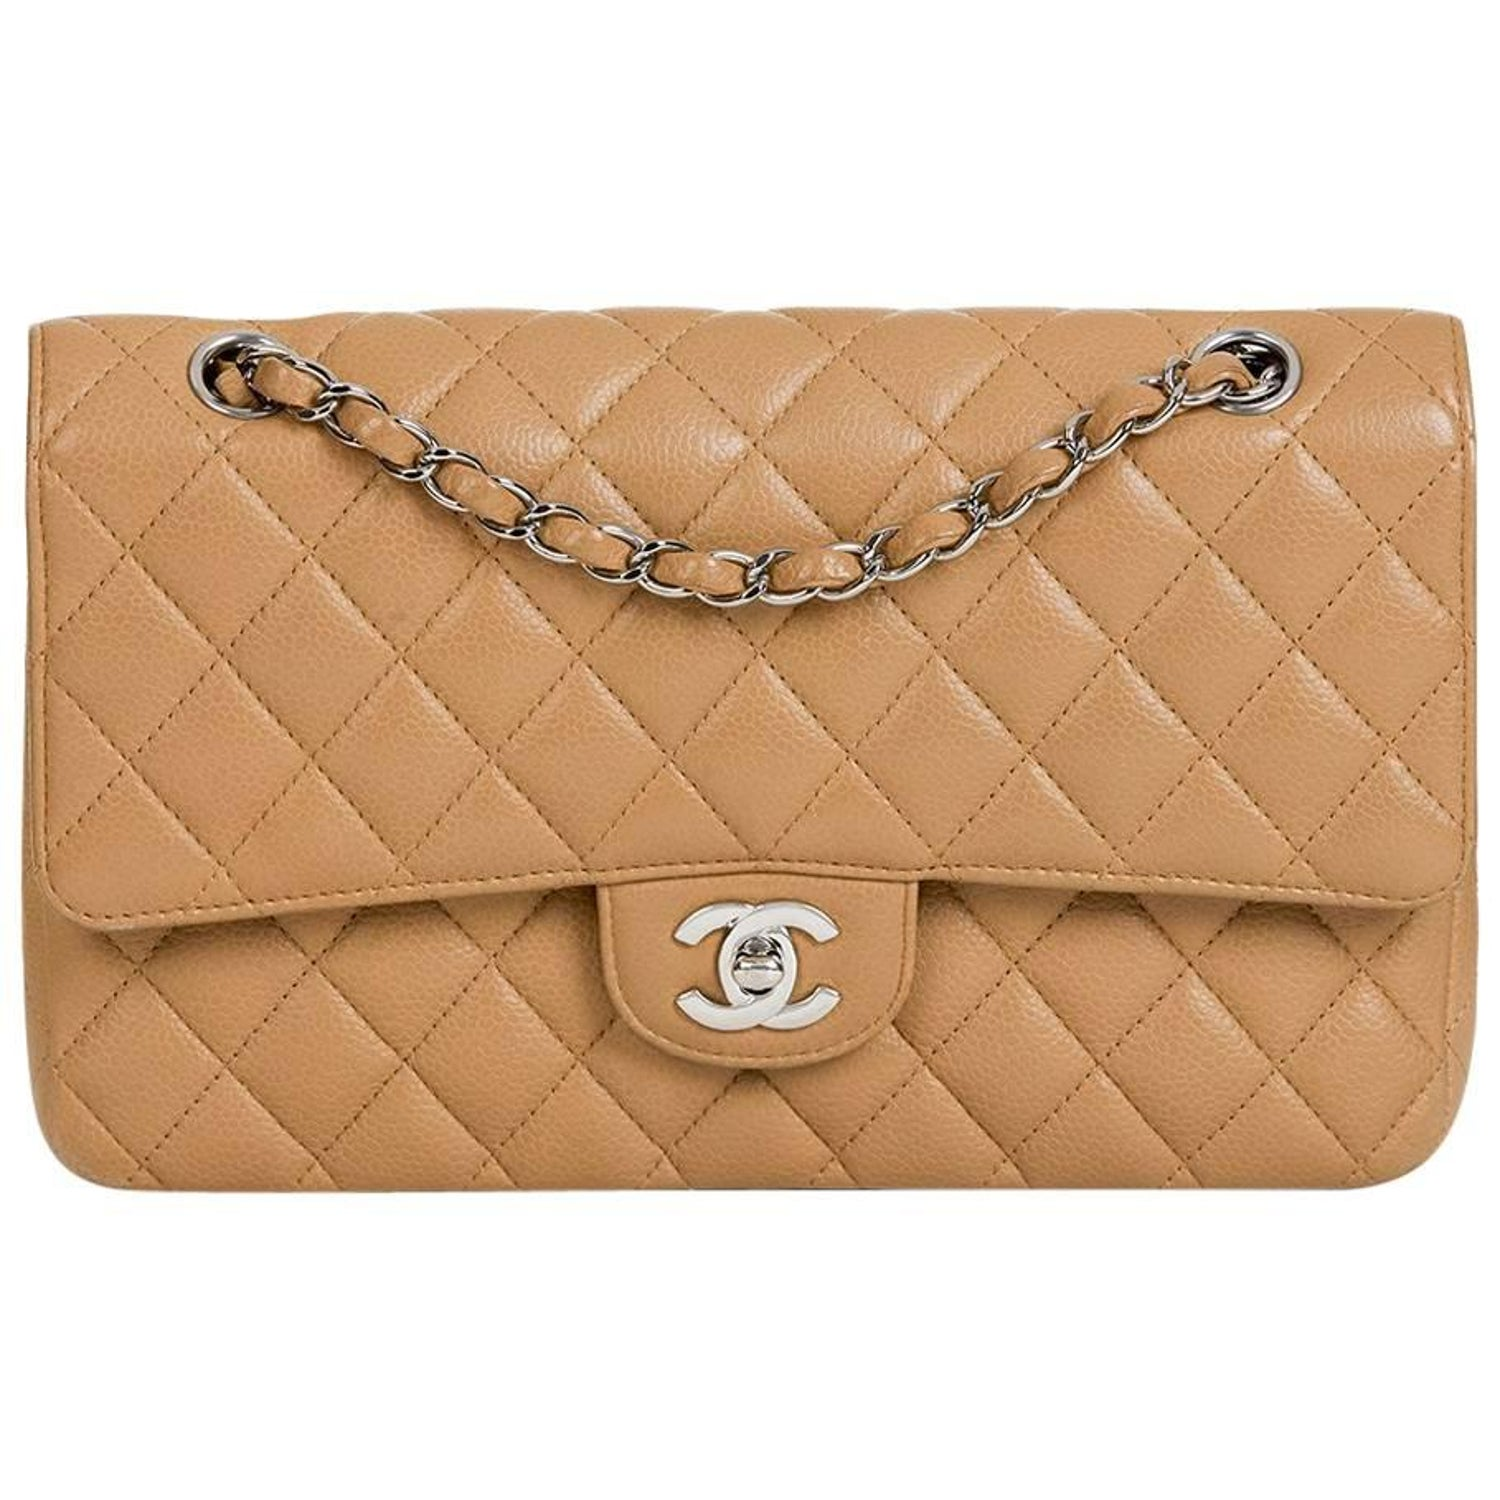 cfb53f89c42f73 2007 Chanel Mocha Quilted Caviar Leather Medium Classic Double Flap Bag at  1stdibs